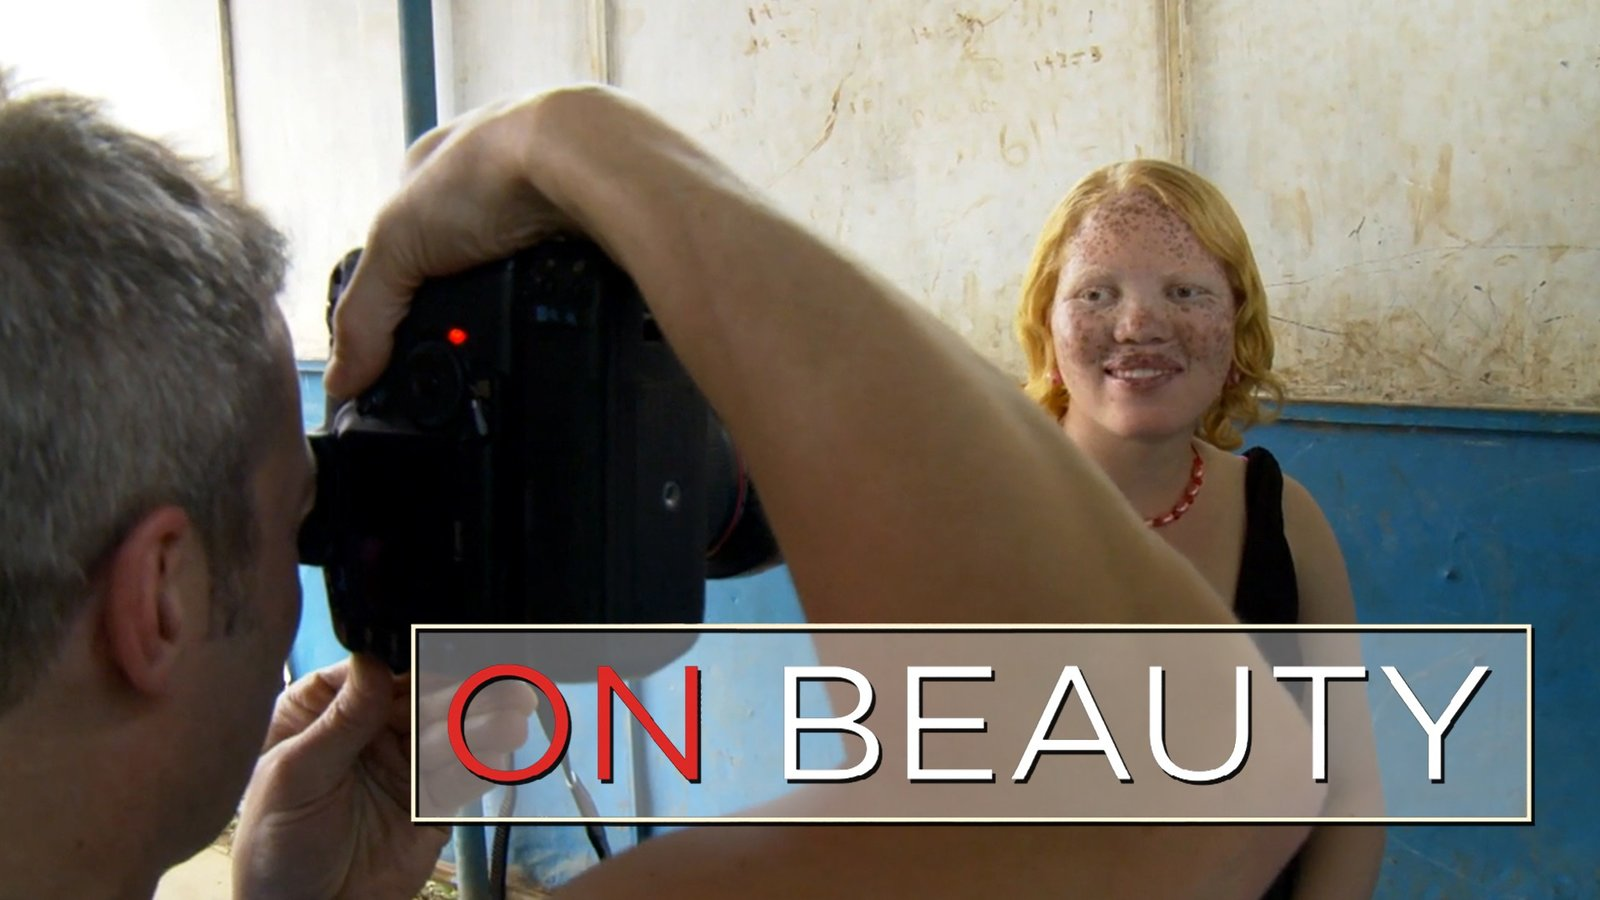 On Beauty - Challenging Beauty Standards in Photography